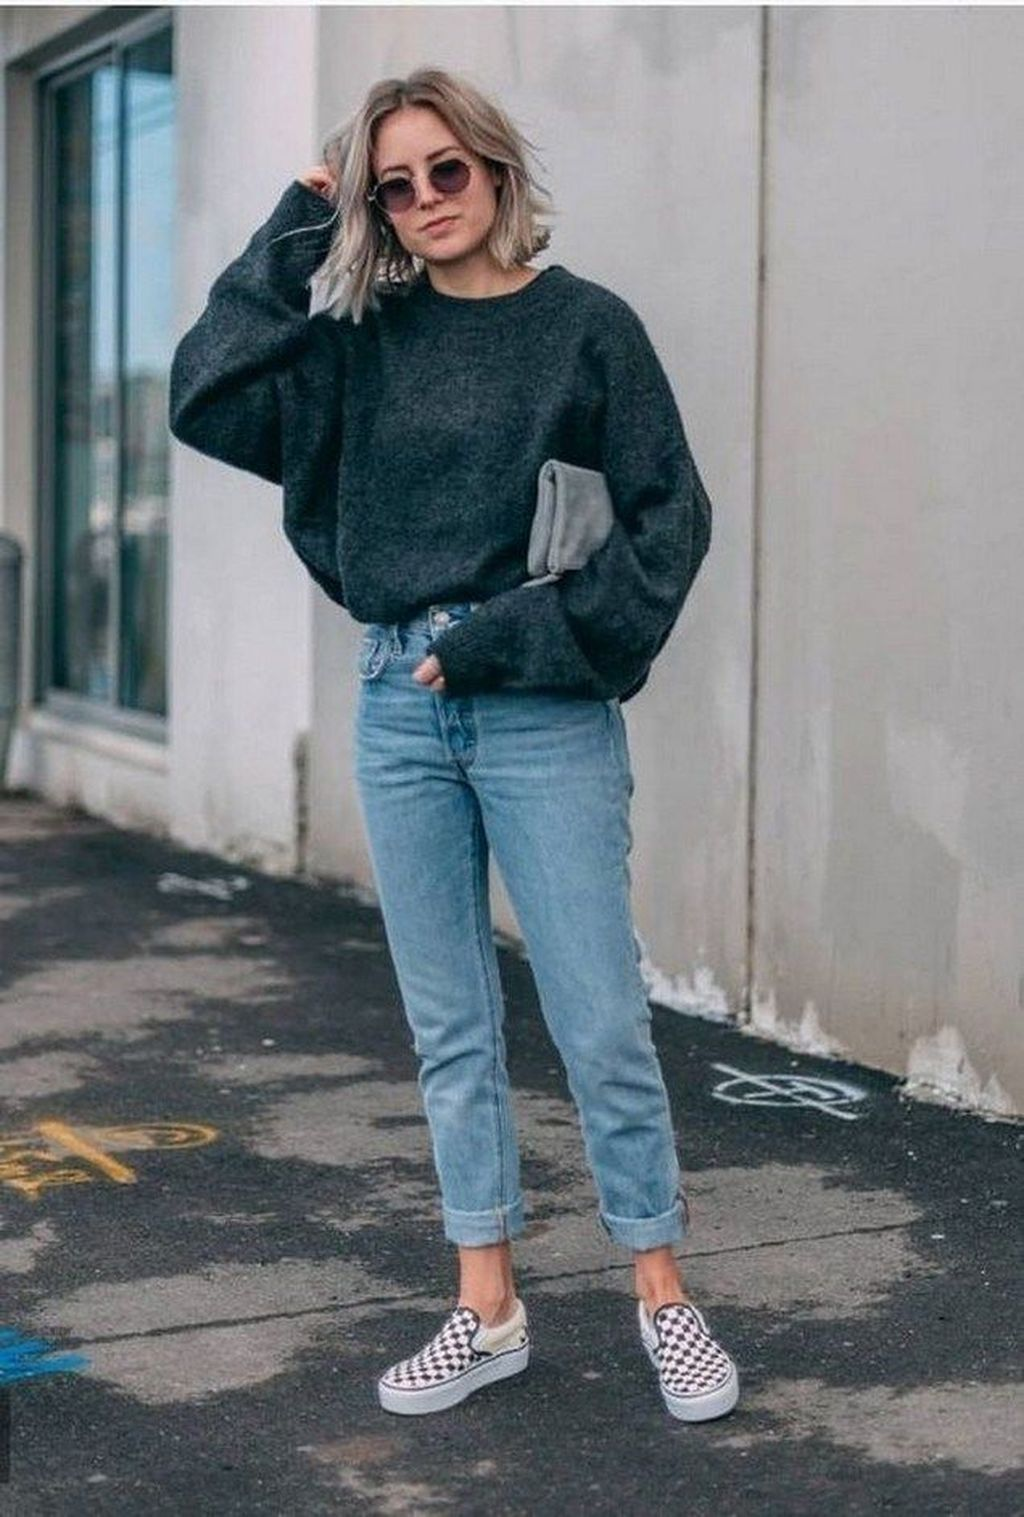 20 Lovely Fall Outfits Ideas To Wear 20 maddyeuphoriaoutfits ...